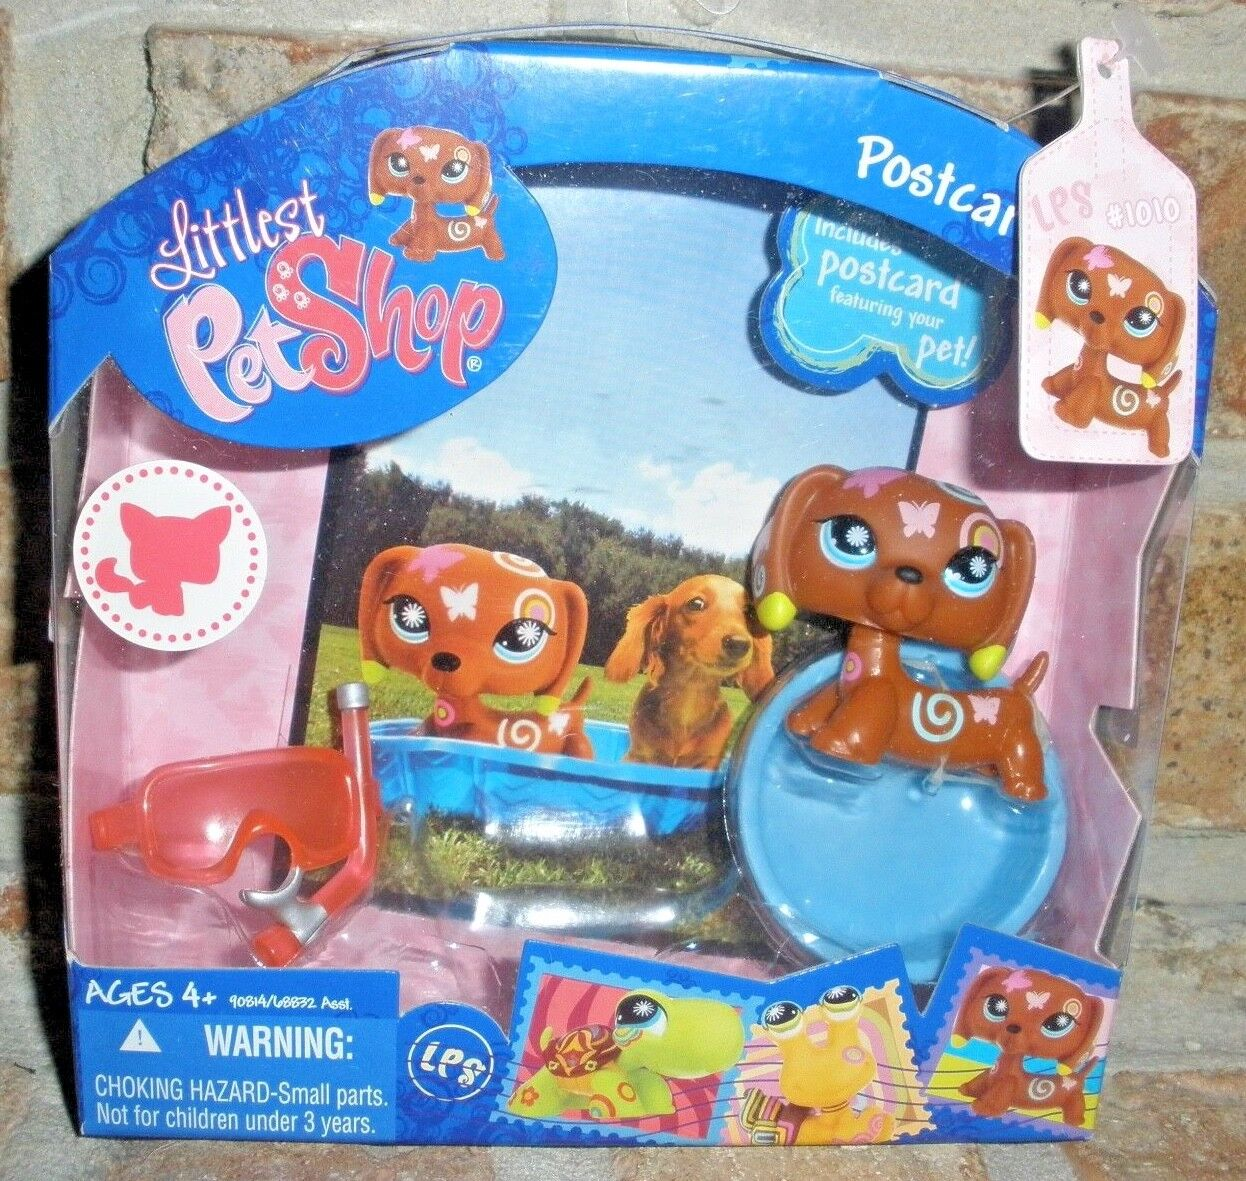 Littlest Pet Shop POSTCARD DACHSHUND 1010 2008 scuba mask VHTF